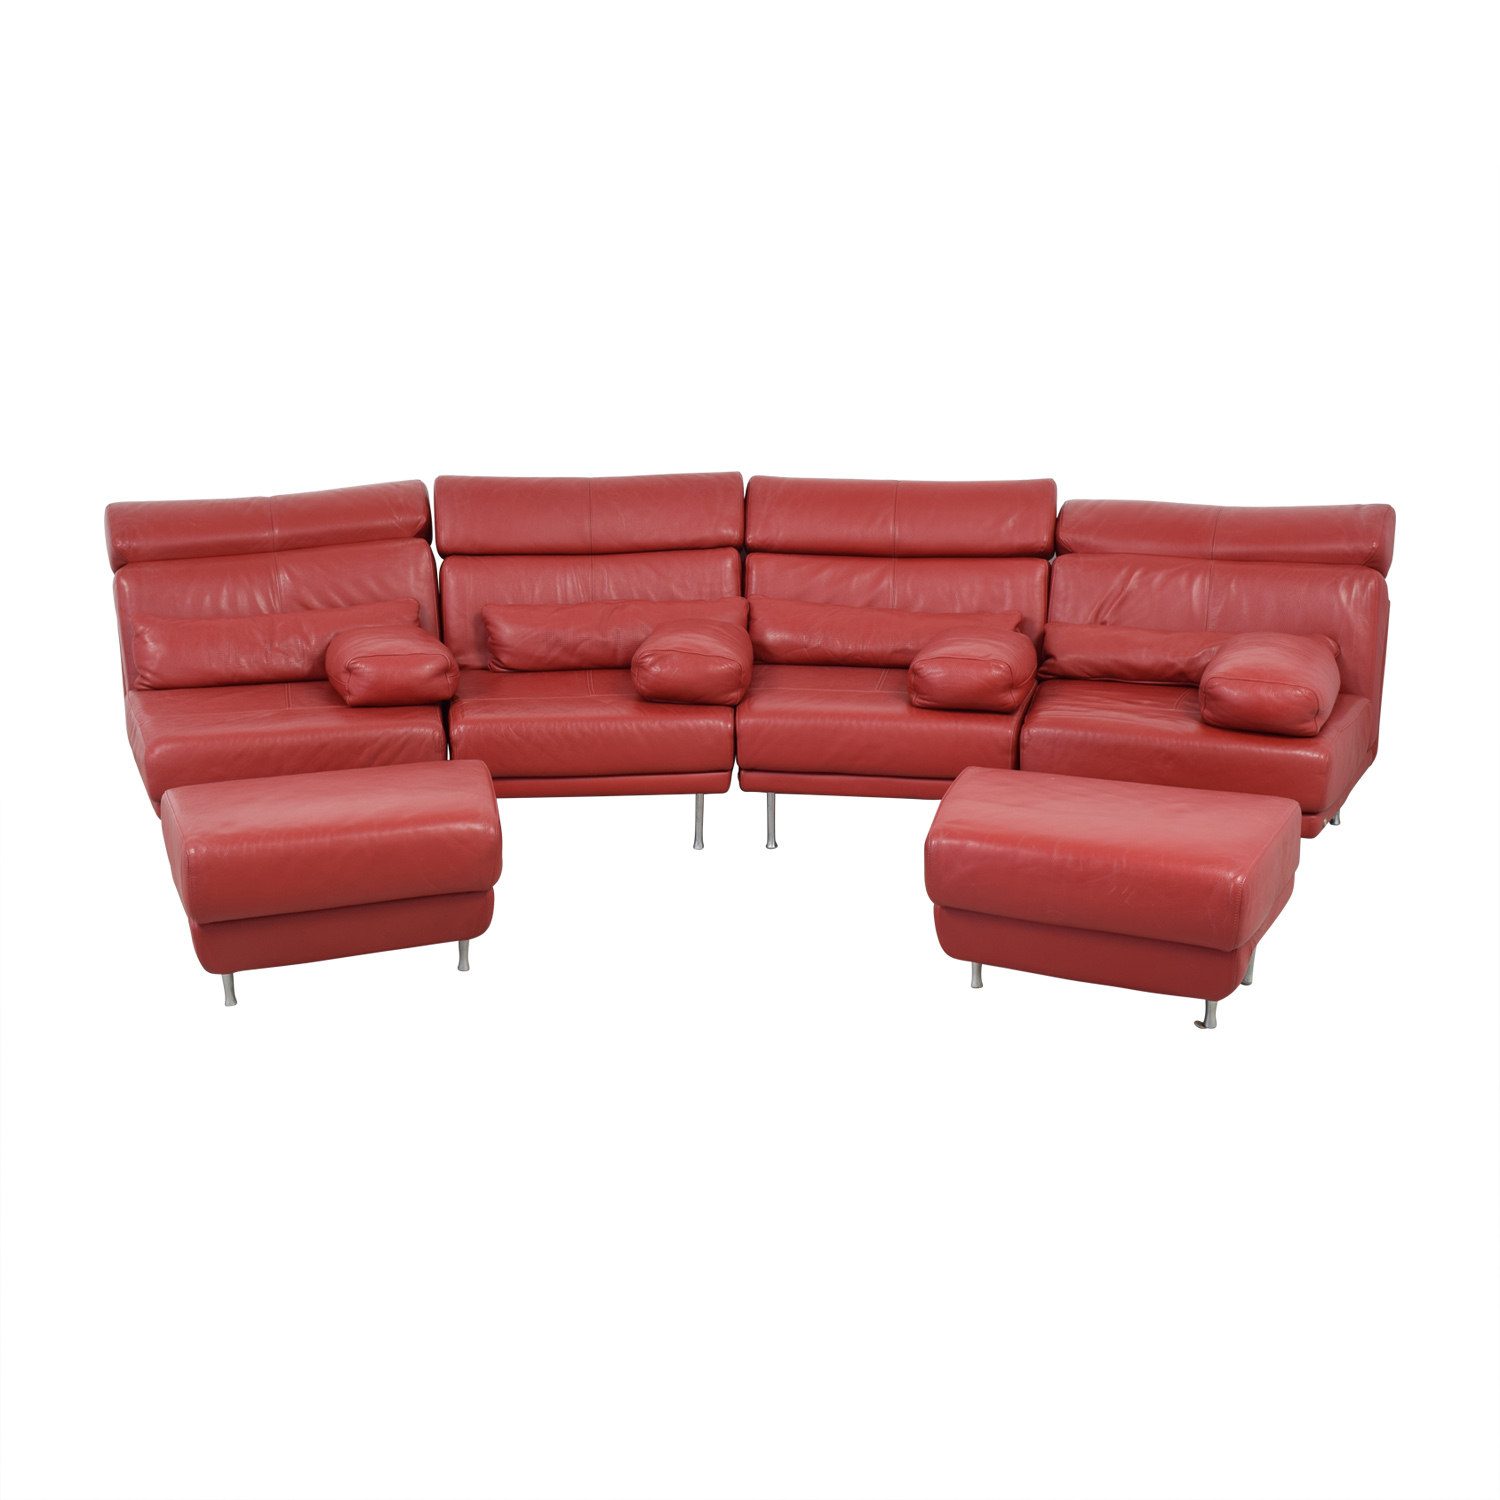 Natuzzi Red Leather Sectional With Two Ottomans Used